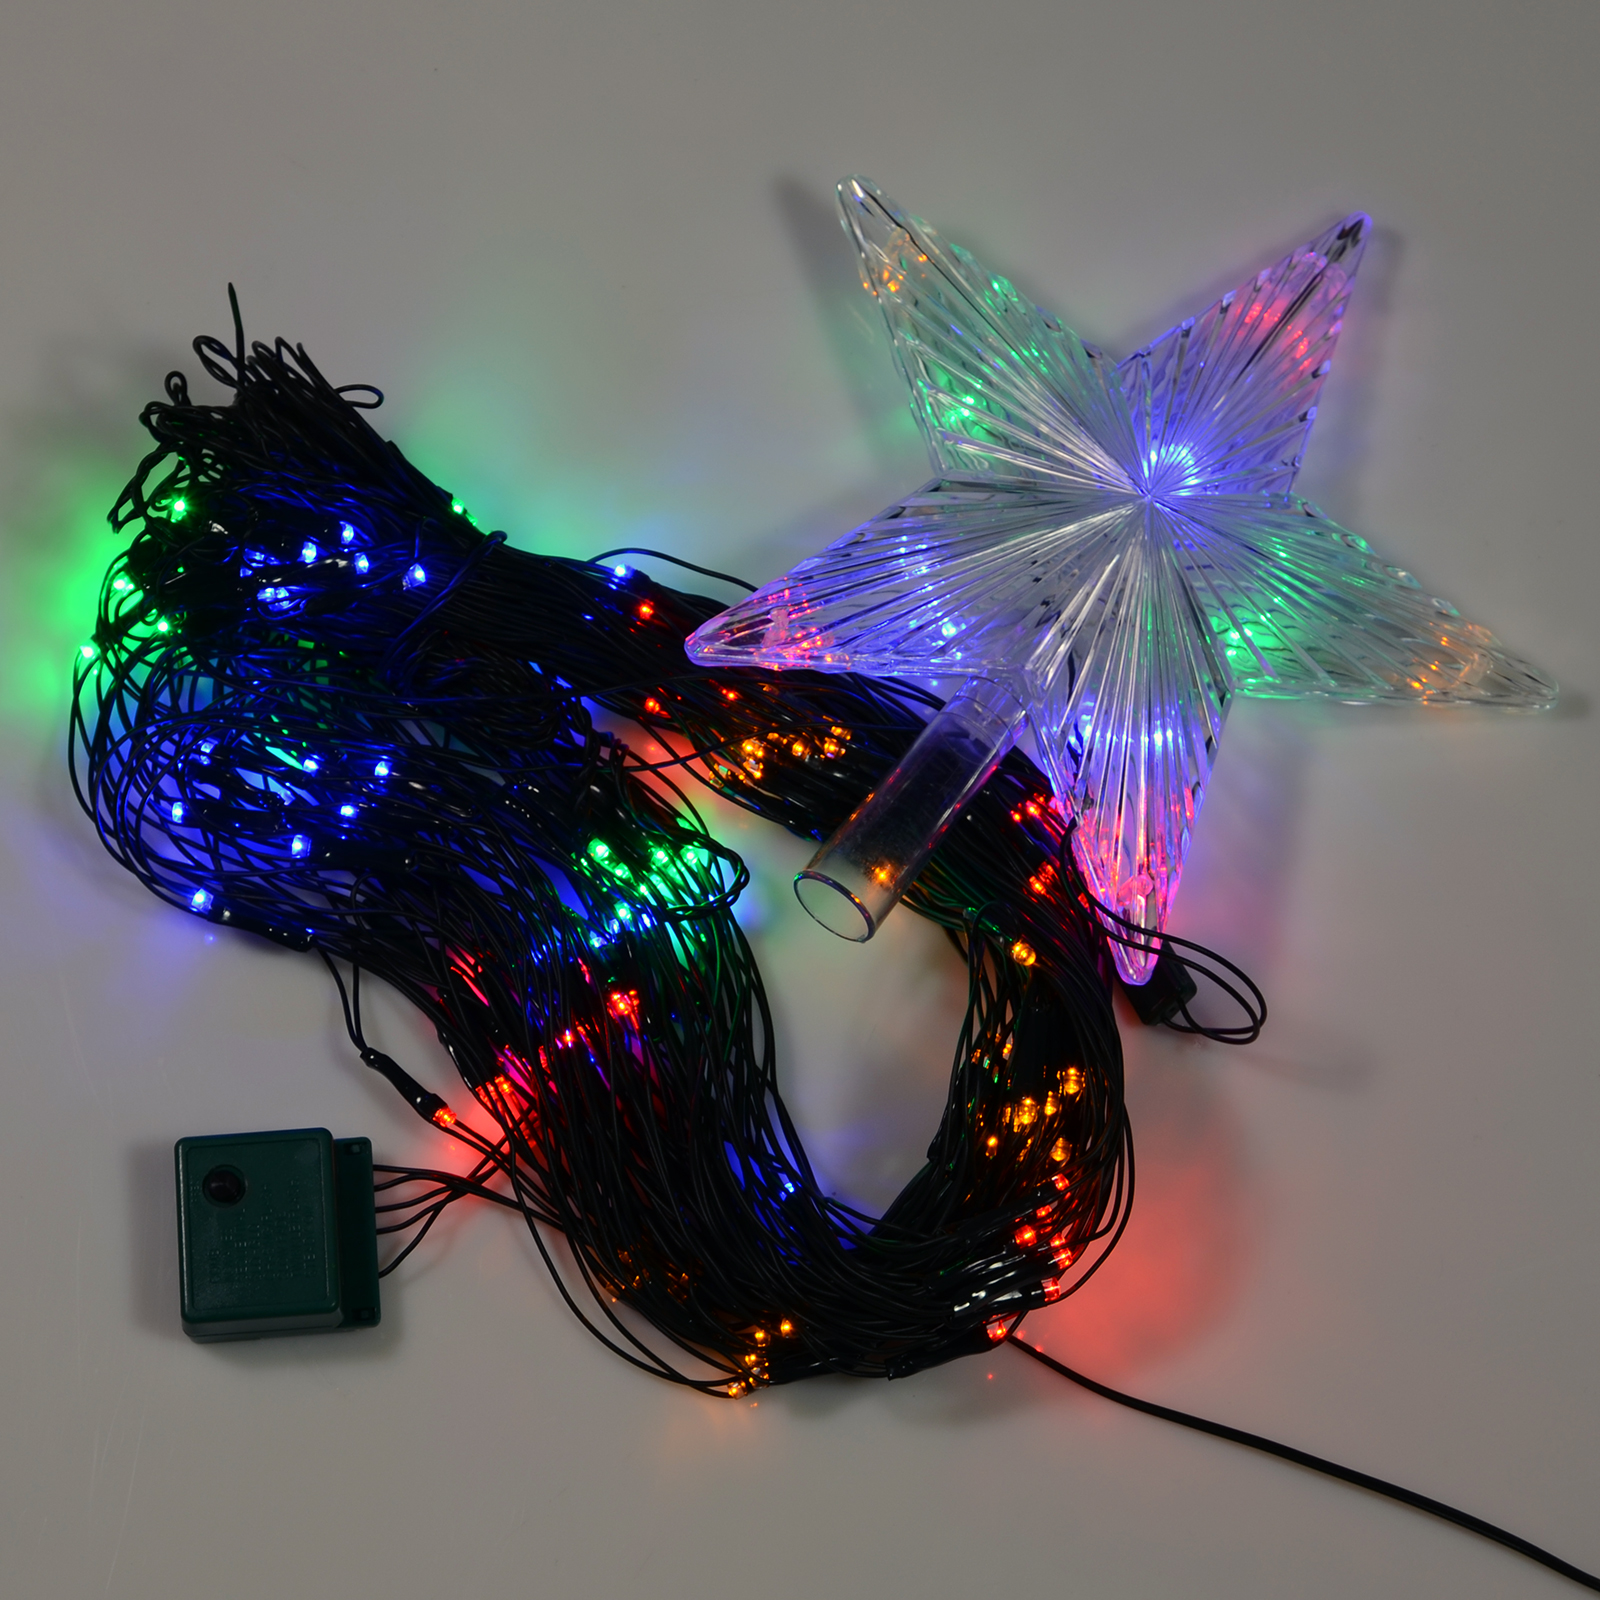 160 multi coloured led chasing net light with star for your christmas tree. Black Bedroom Furniture Sets. Home Design Ideas